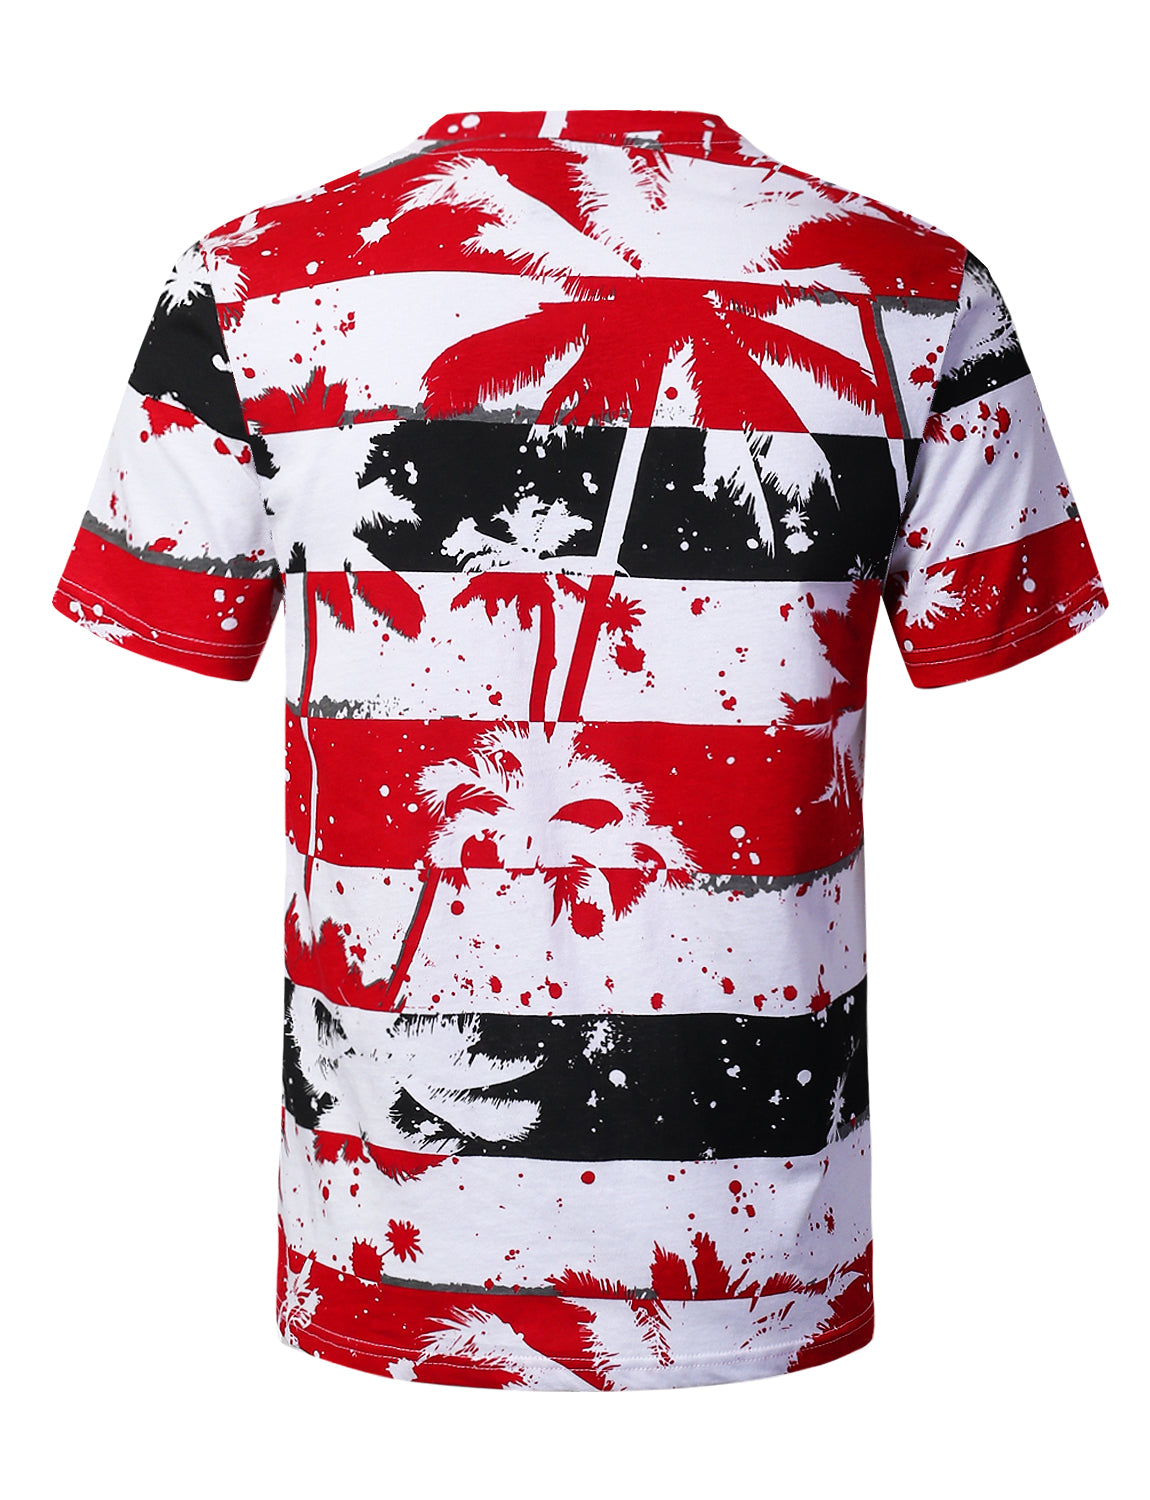 RED Palm Tree Striped Print T-shirt - URBANCREWS